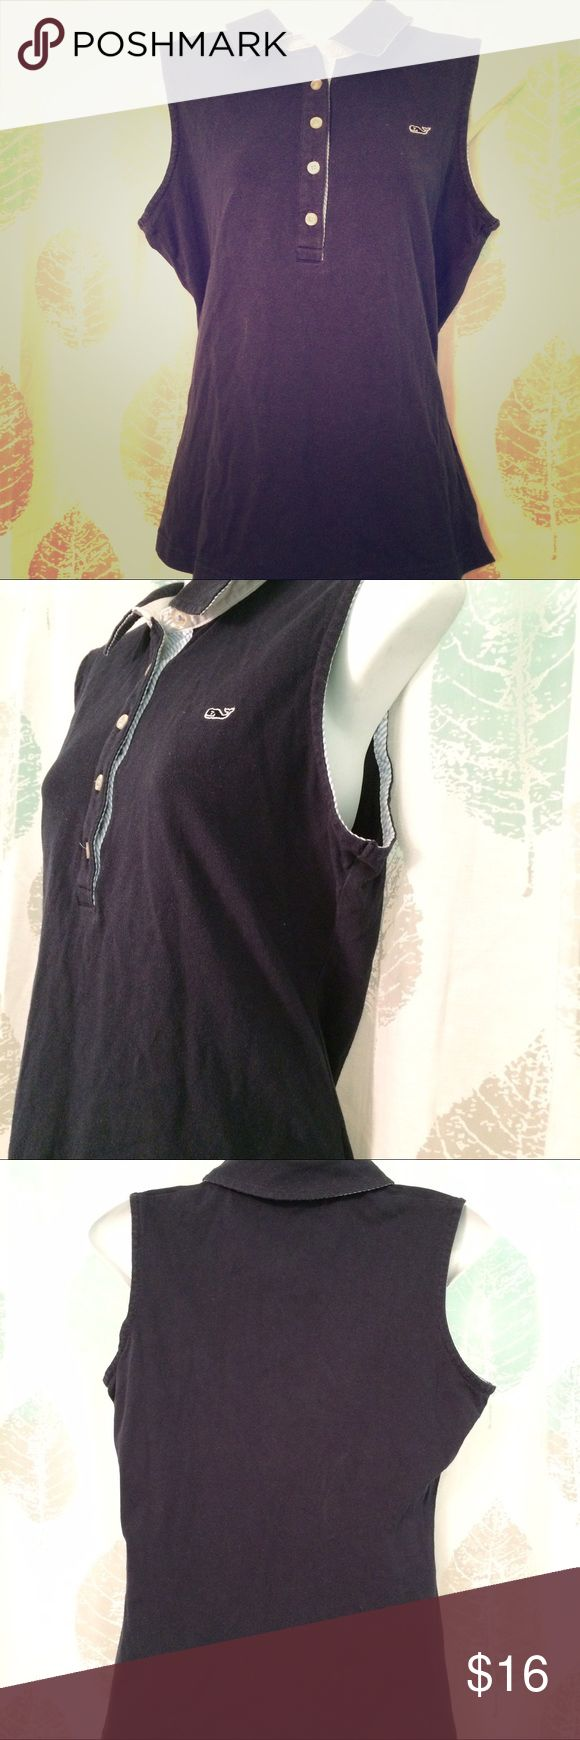 """VINYARD VINES sleeveless polo shirt navy SZ M Sweet navy blue 5-button polo shirt Sleeveless with blue/white striped fabric along button panel and arm holes Signature buttons Embroidered whale logo on bust Cotton spandex Size 10 Pit to pit 19"""" Length 25.5"""" Very good condition Vinyard Vines Tops Blouses"""